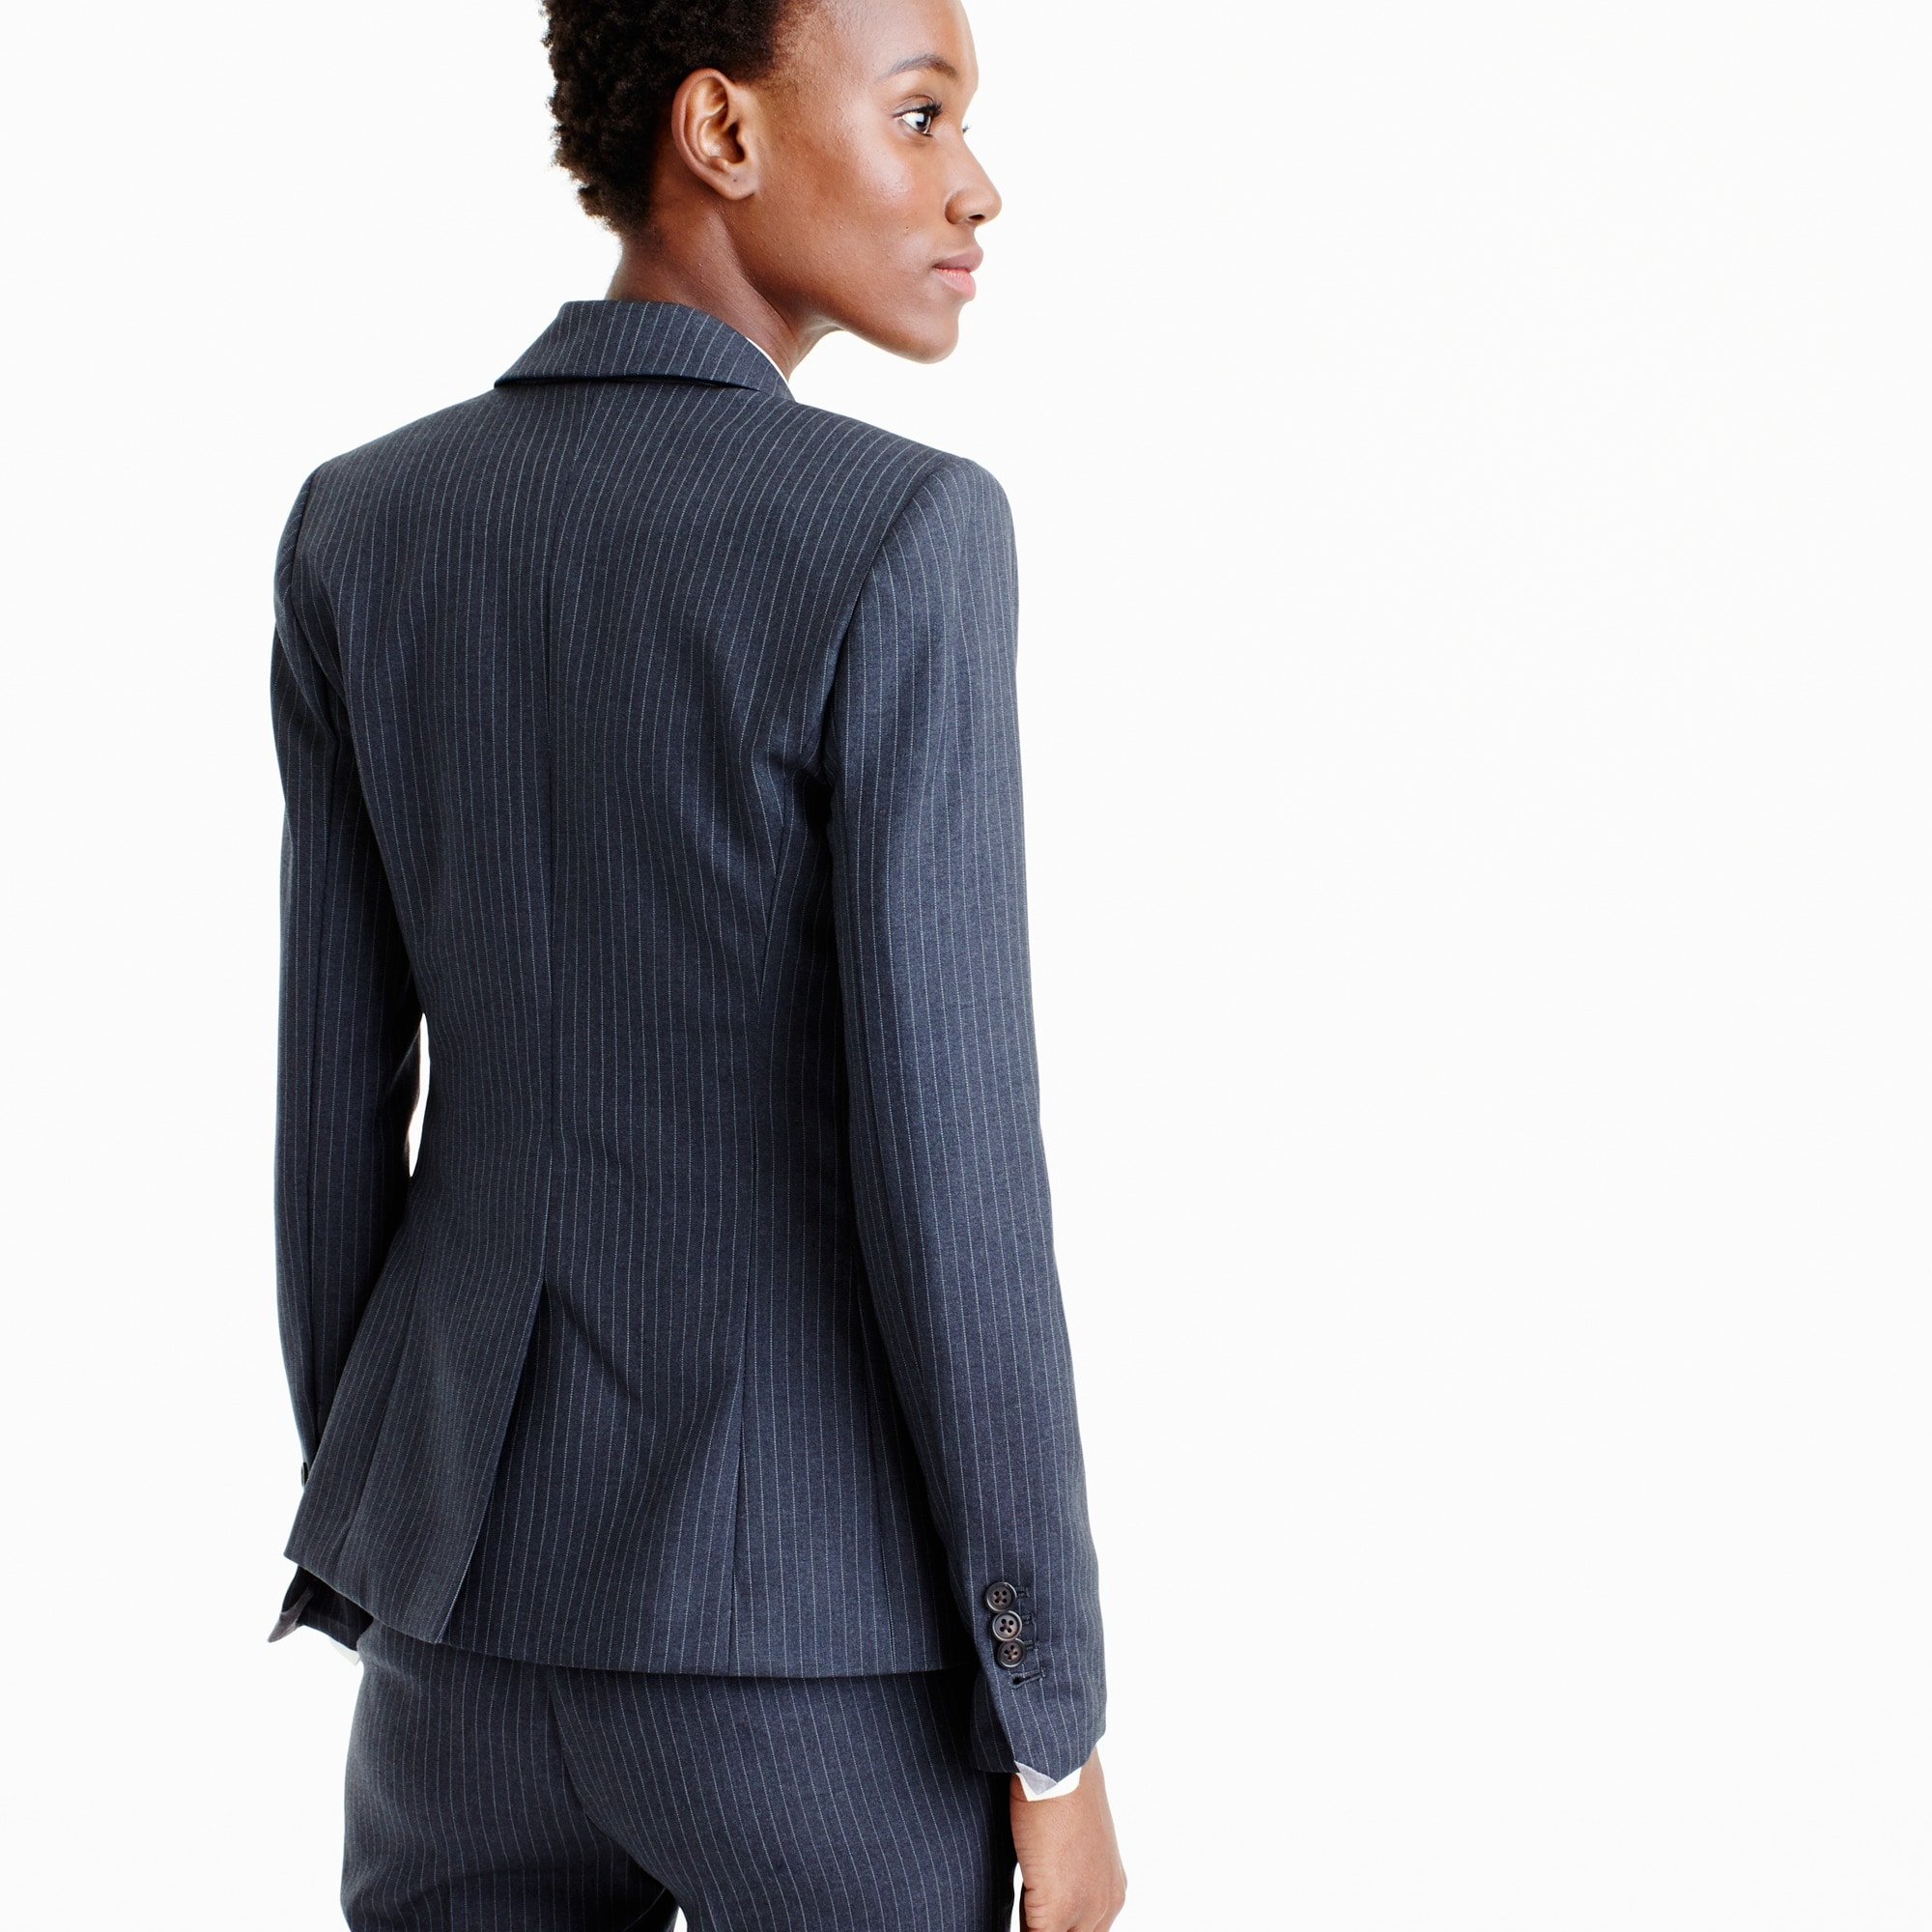 Campbell blazer in pinstripe Super 120s wool